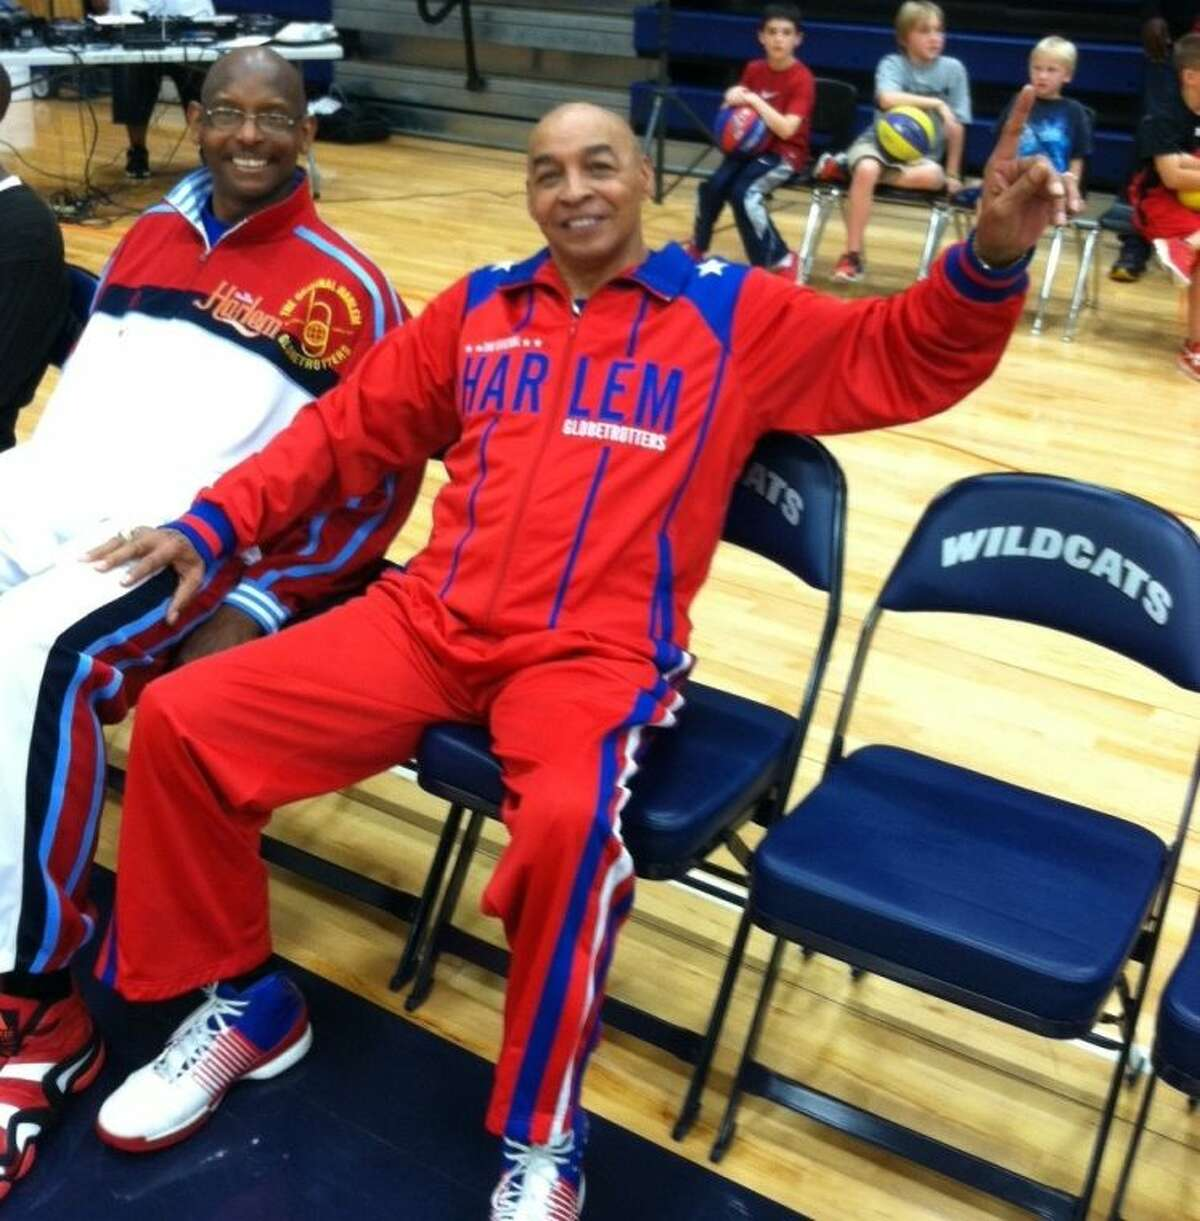 Famous Harlem Globetrotters player Curly Neal gets ready for action at Tomball Memorial High School in 2017.